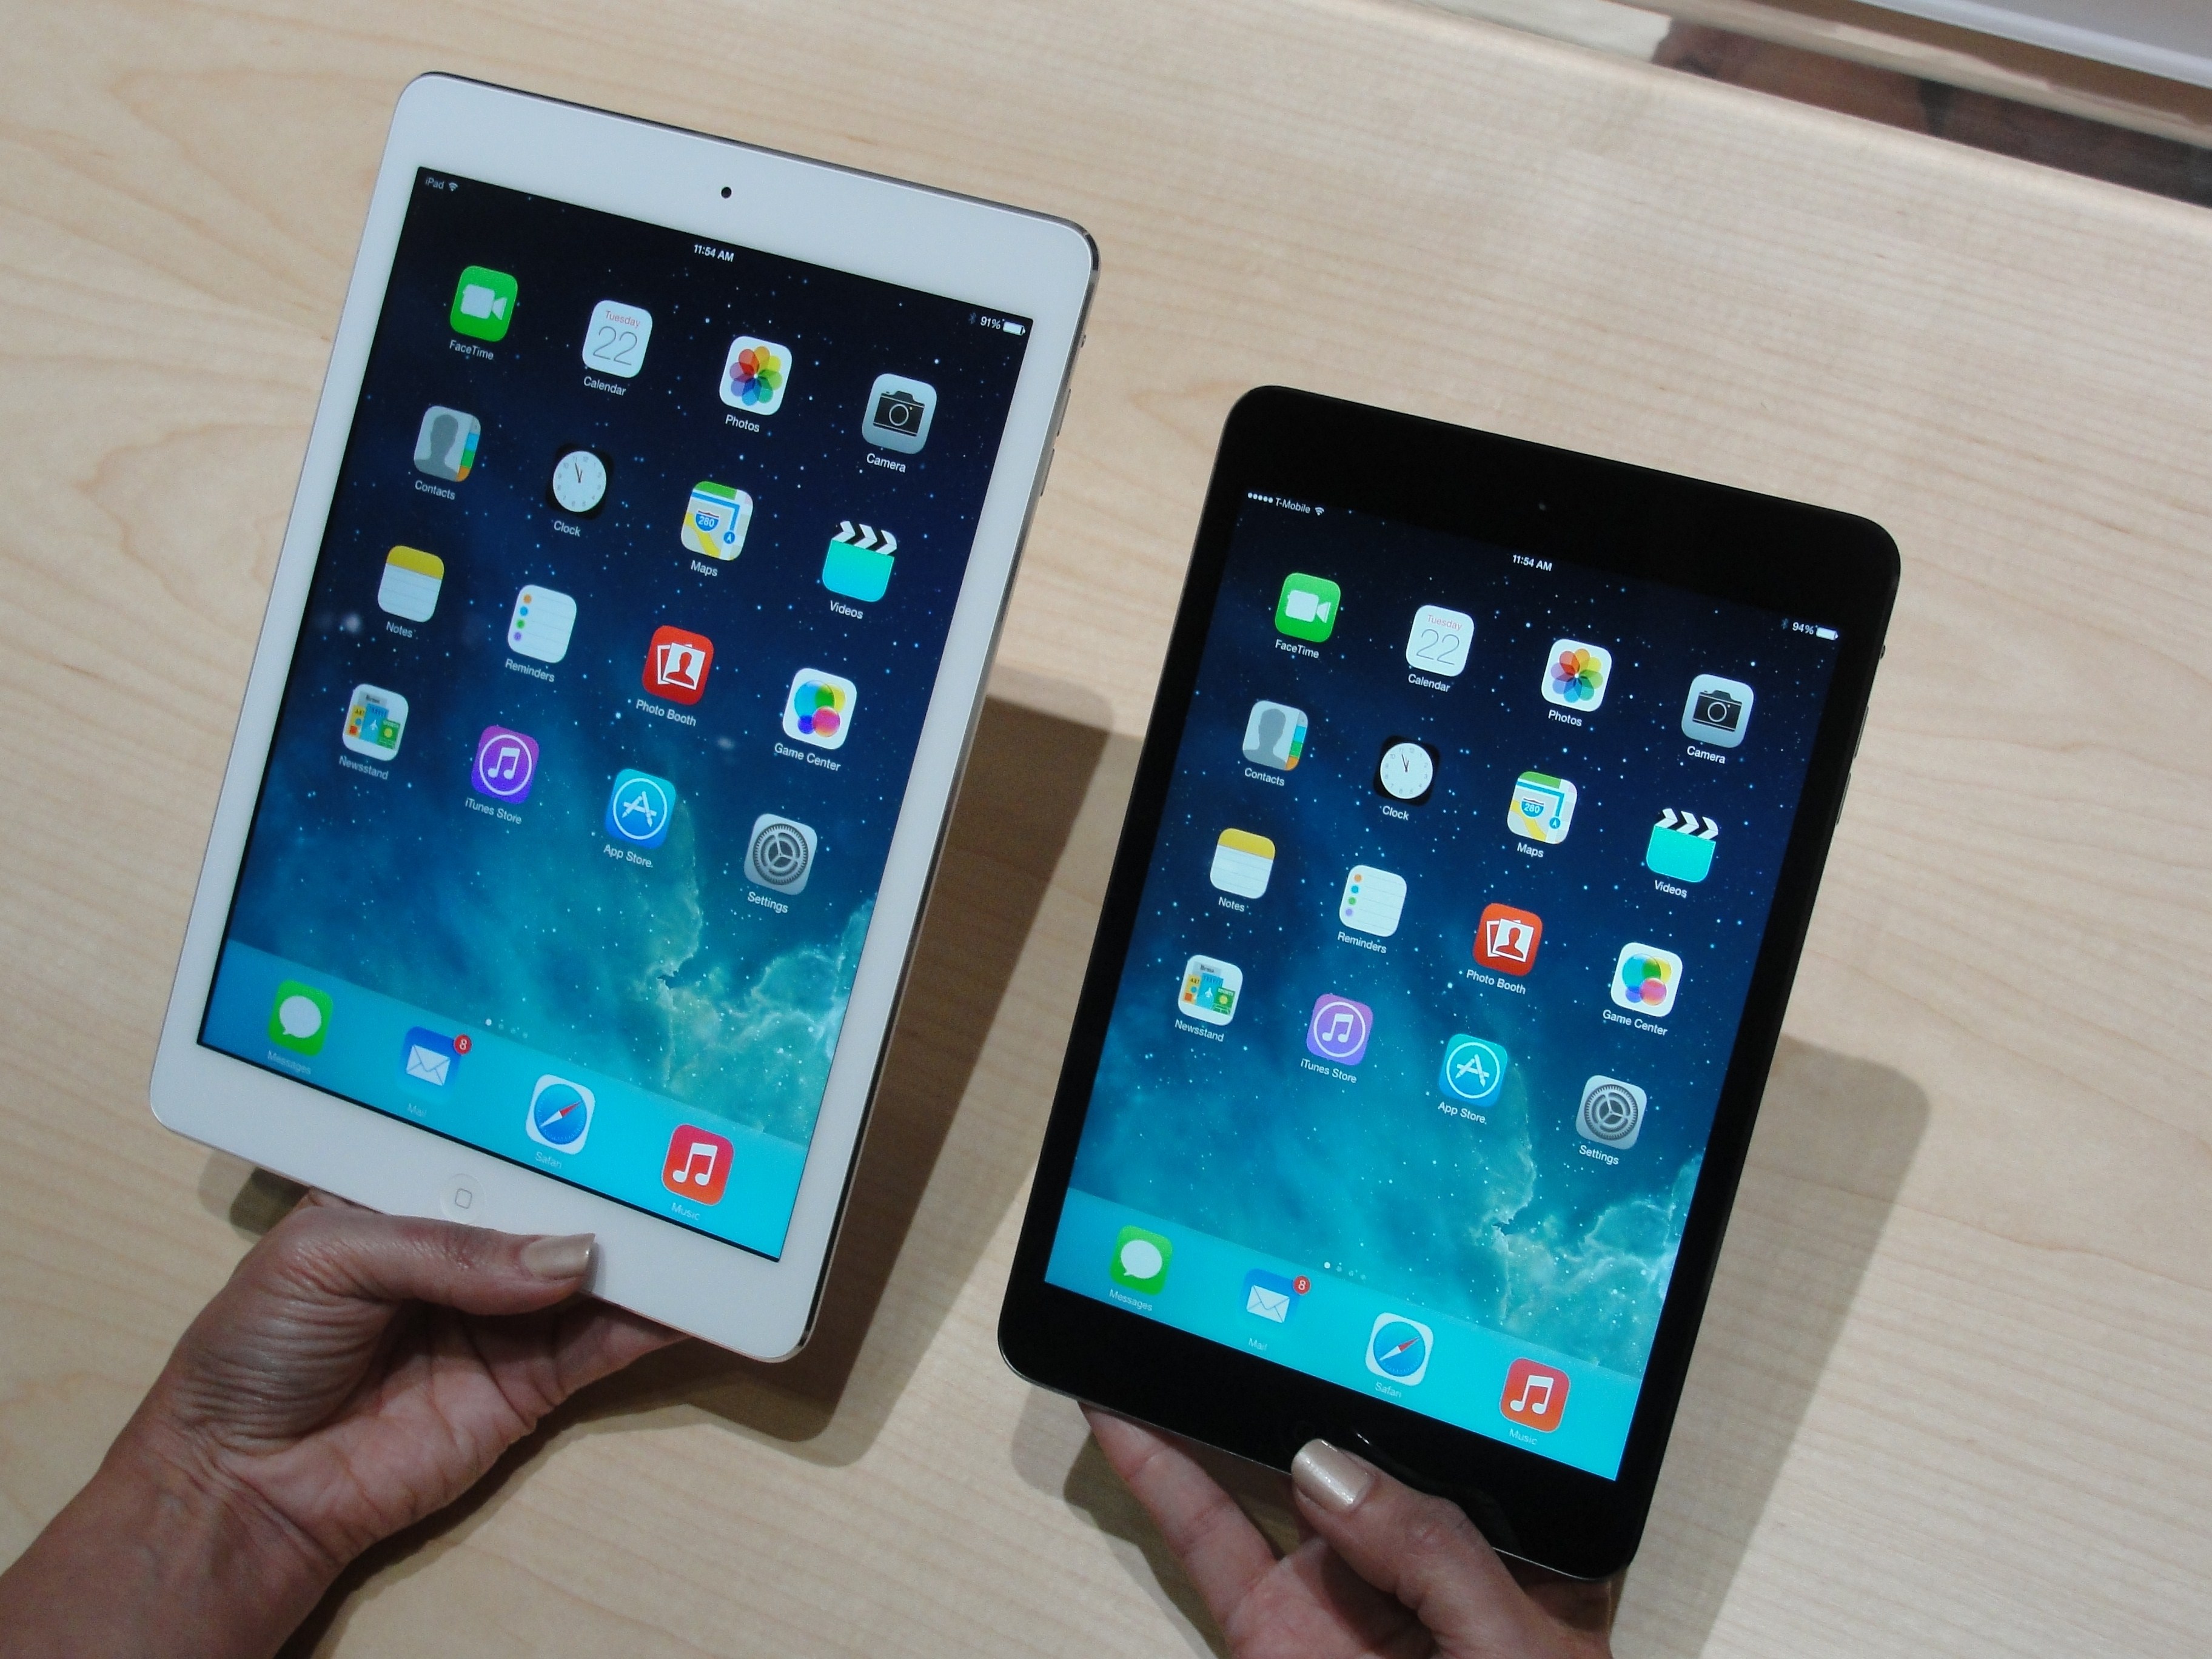 Apple's new iPad Air (L) and iPad Mini tablets are seen on October 22, 2013 in San Francisco, California. (AFP Photo)